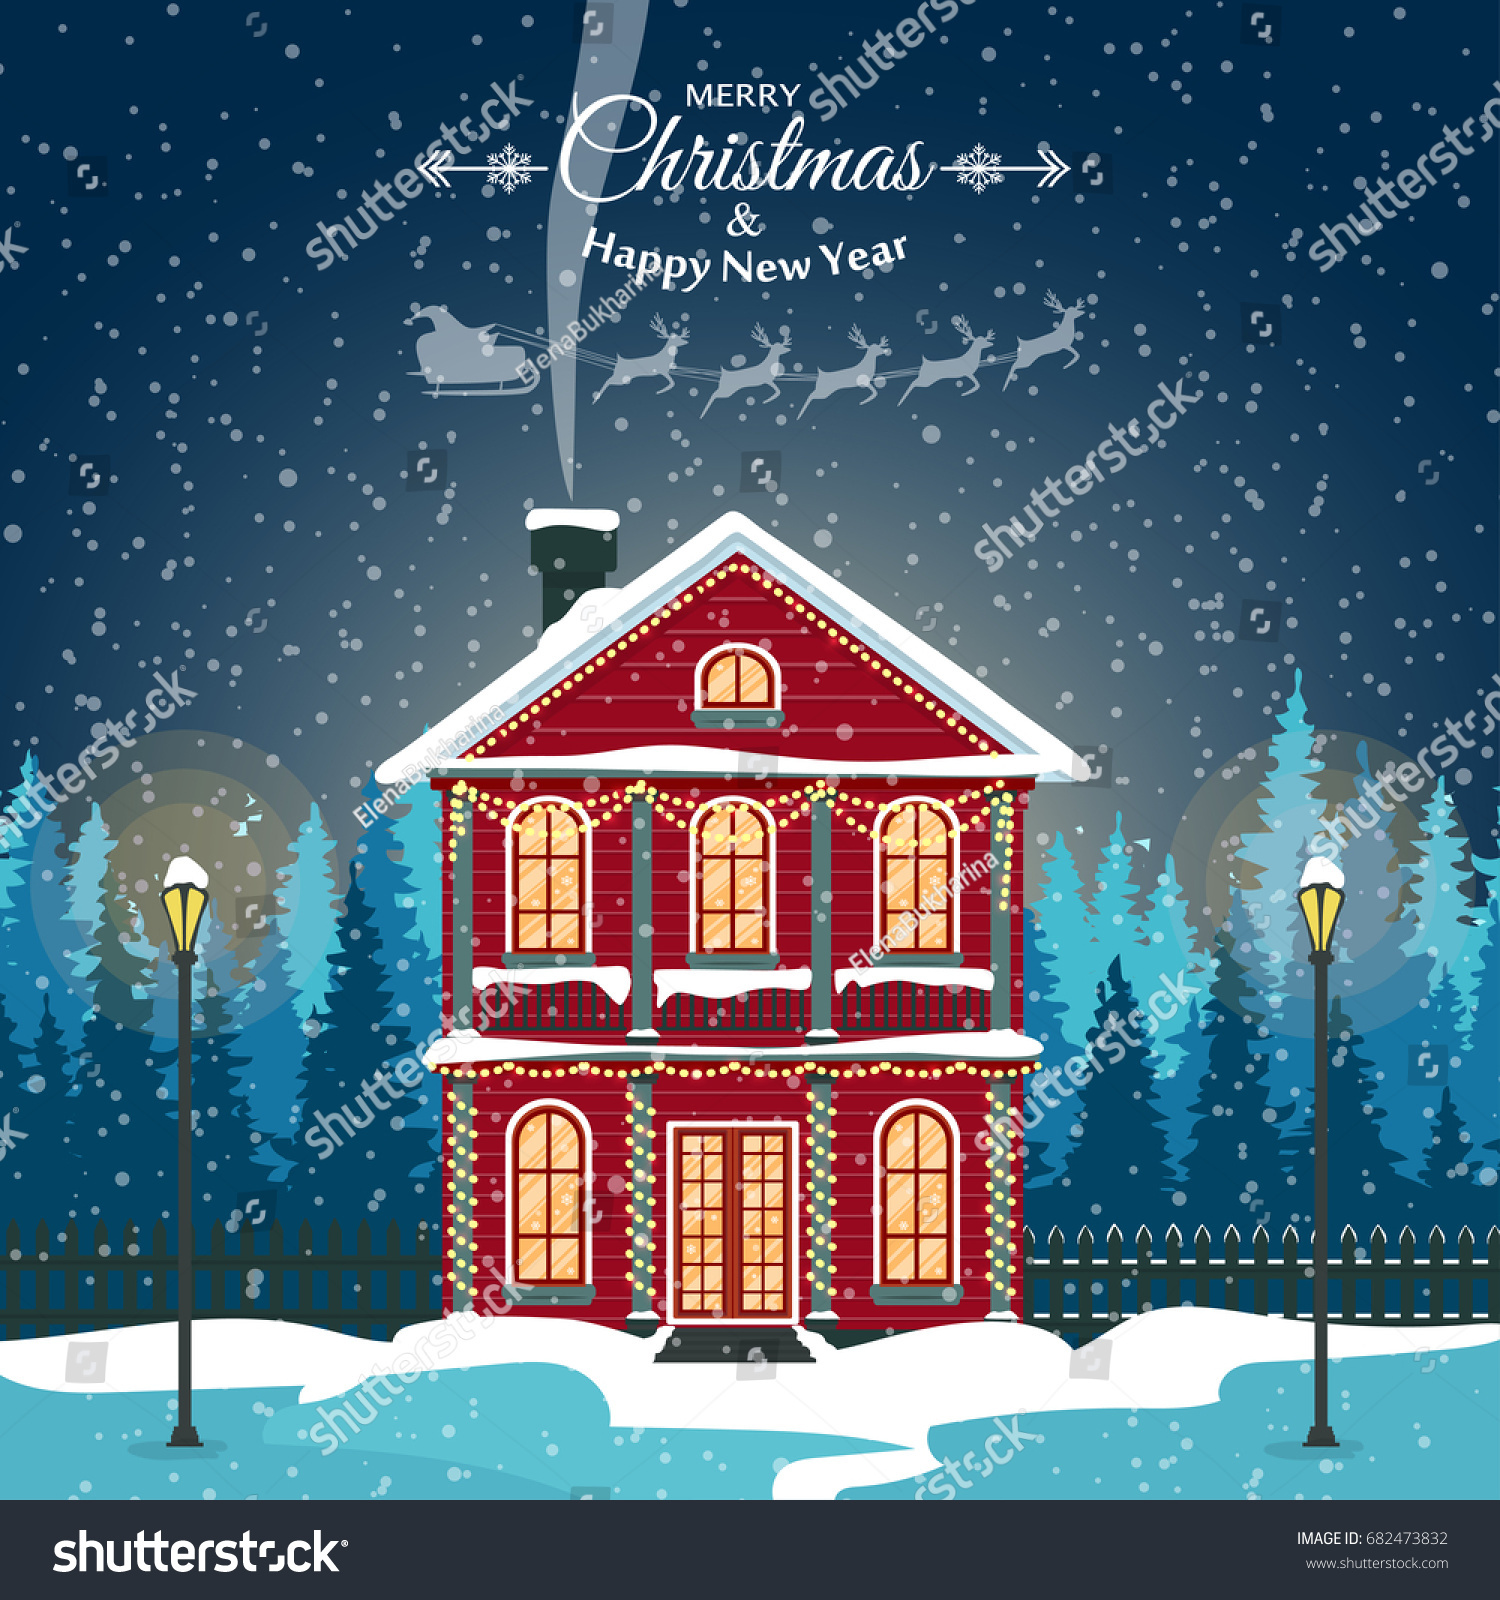 merry christmas card with house vector illustration happy new year